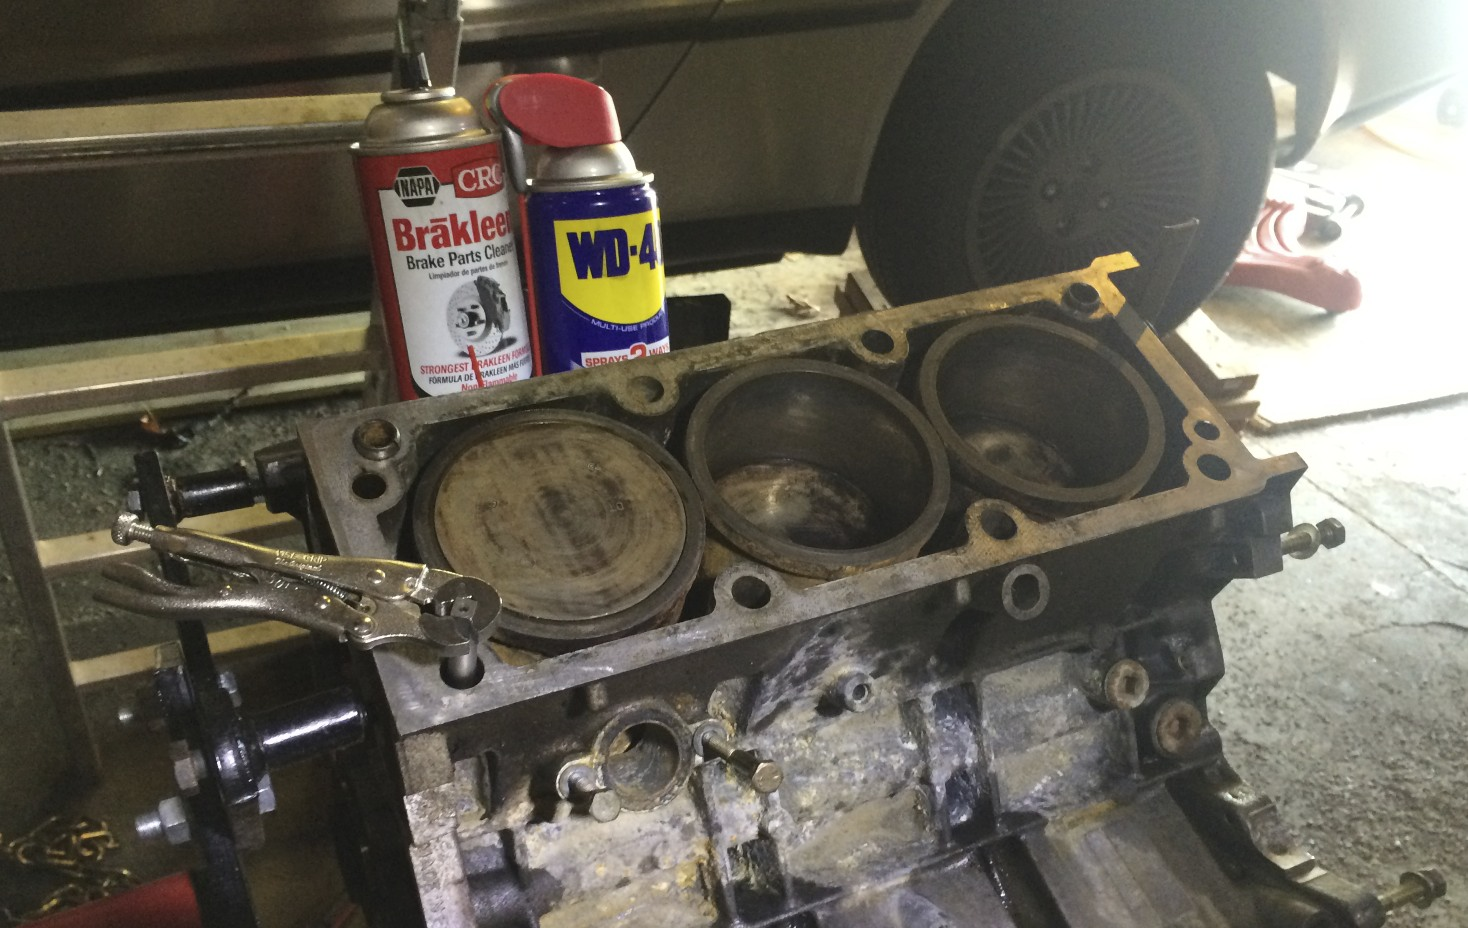 The tap is used with WD-40 and cleaned with brake cleaner. I forgot my T handle, so I used vice grips to run the tap.